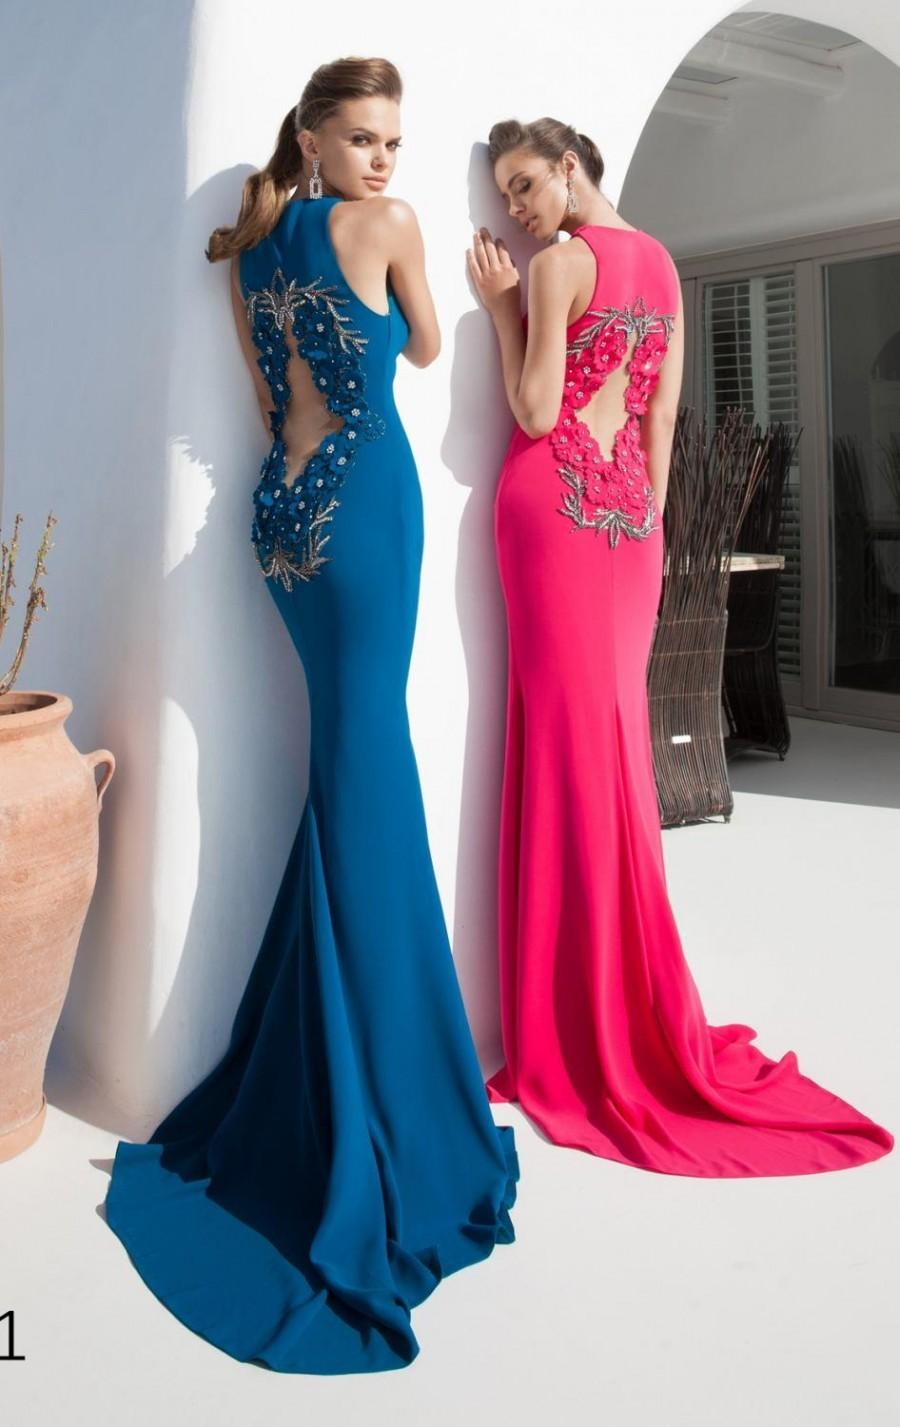 Wedding - Exquisite 2015 Mermaid Sexy Evening Dresses Prom Cheap Split Beaded Flower Hollow Satin Party Dress Formal Gowns Tarik Ediz Sweep Train Online with $130.84/Piece on Hjklp88's Store